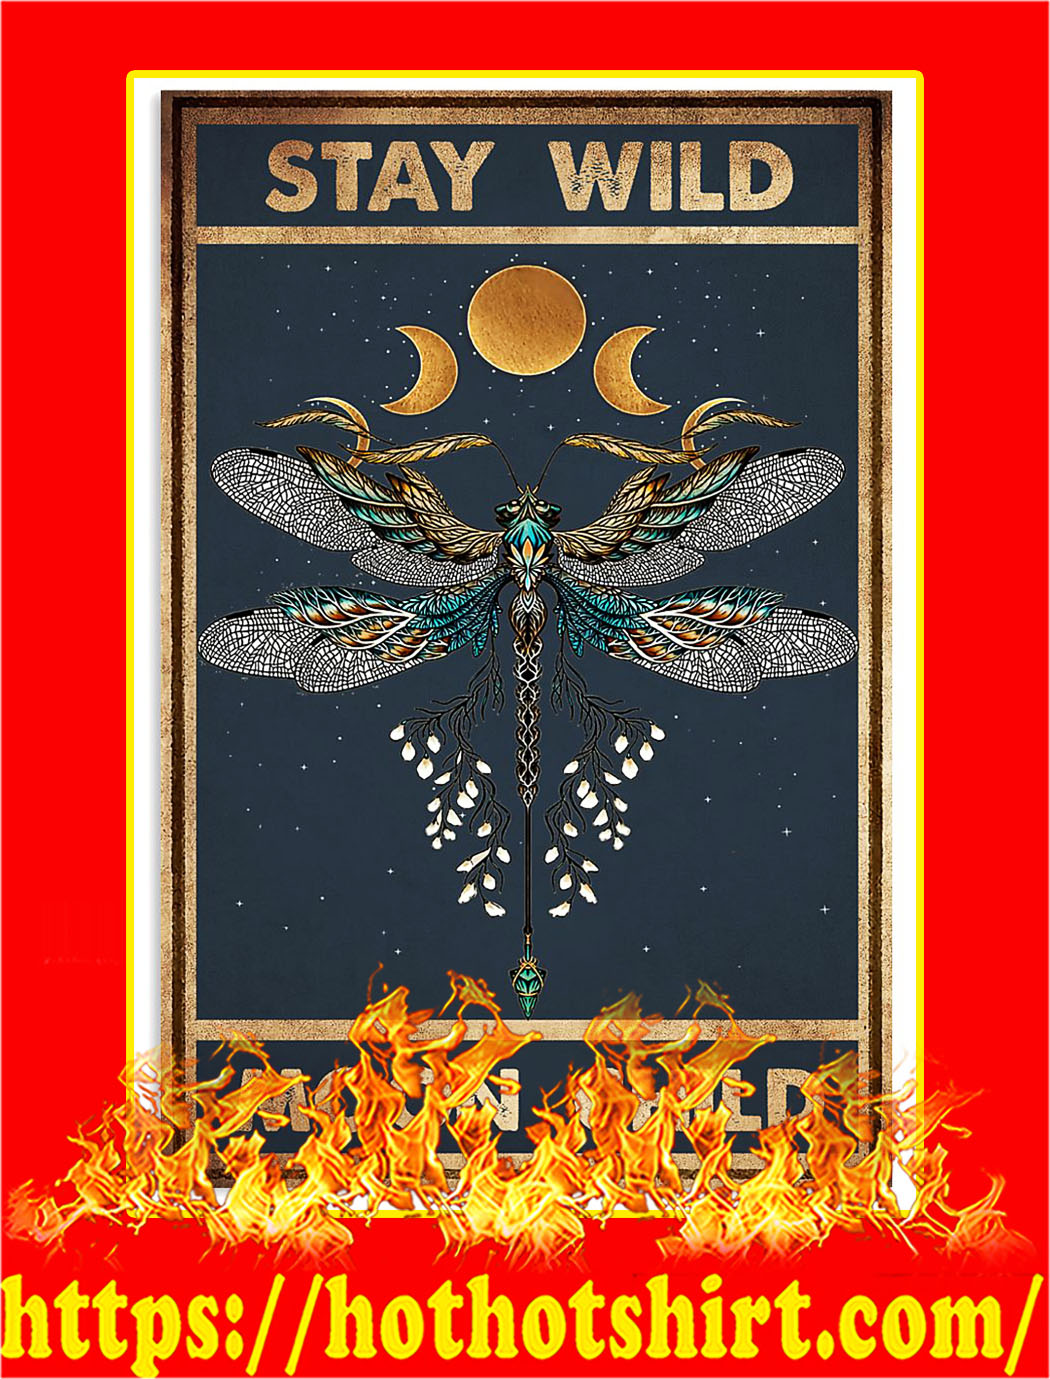 Stay wild moon child dragonfly poster - A3